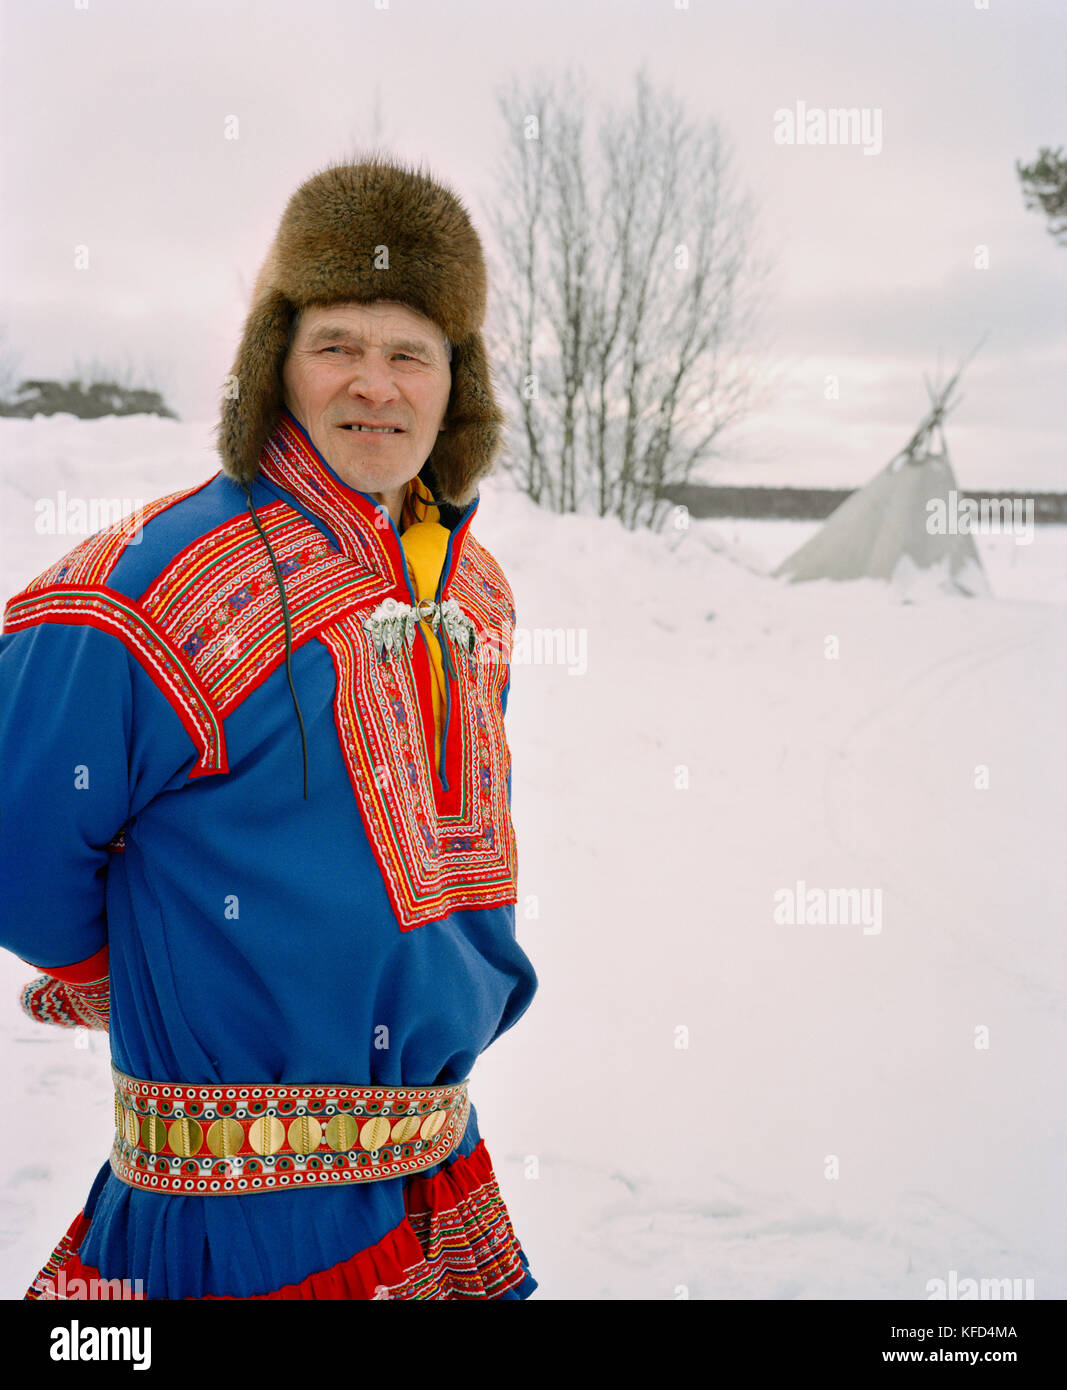 FINLAND, Hemet, Arctic, Sami man wearing a traditional Sami outfit during a Sami Festival in Hemet. - Stock Image